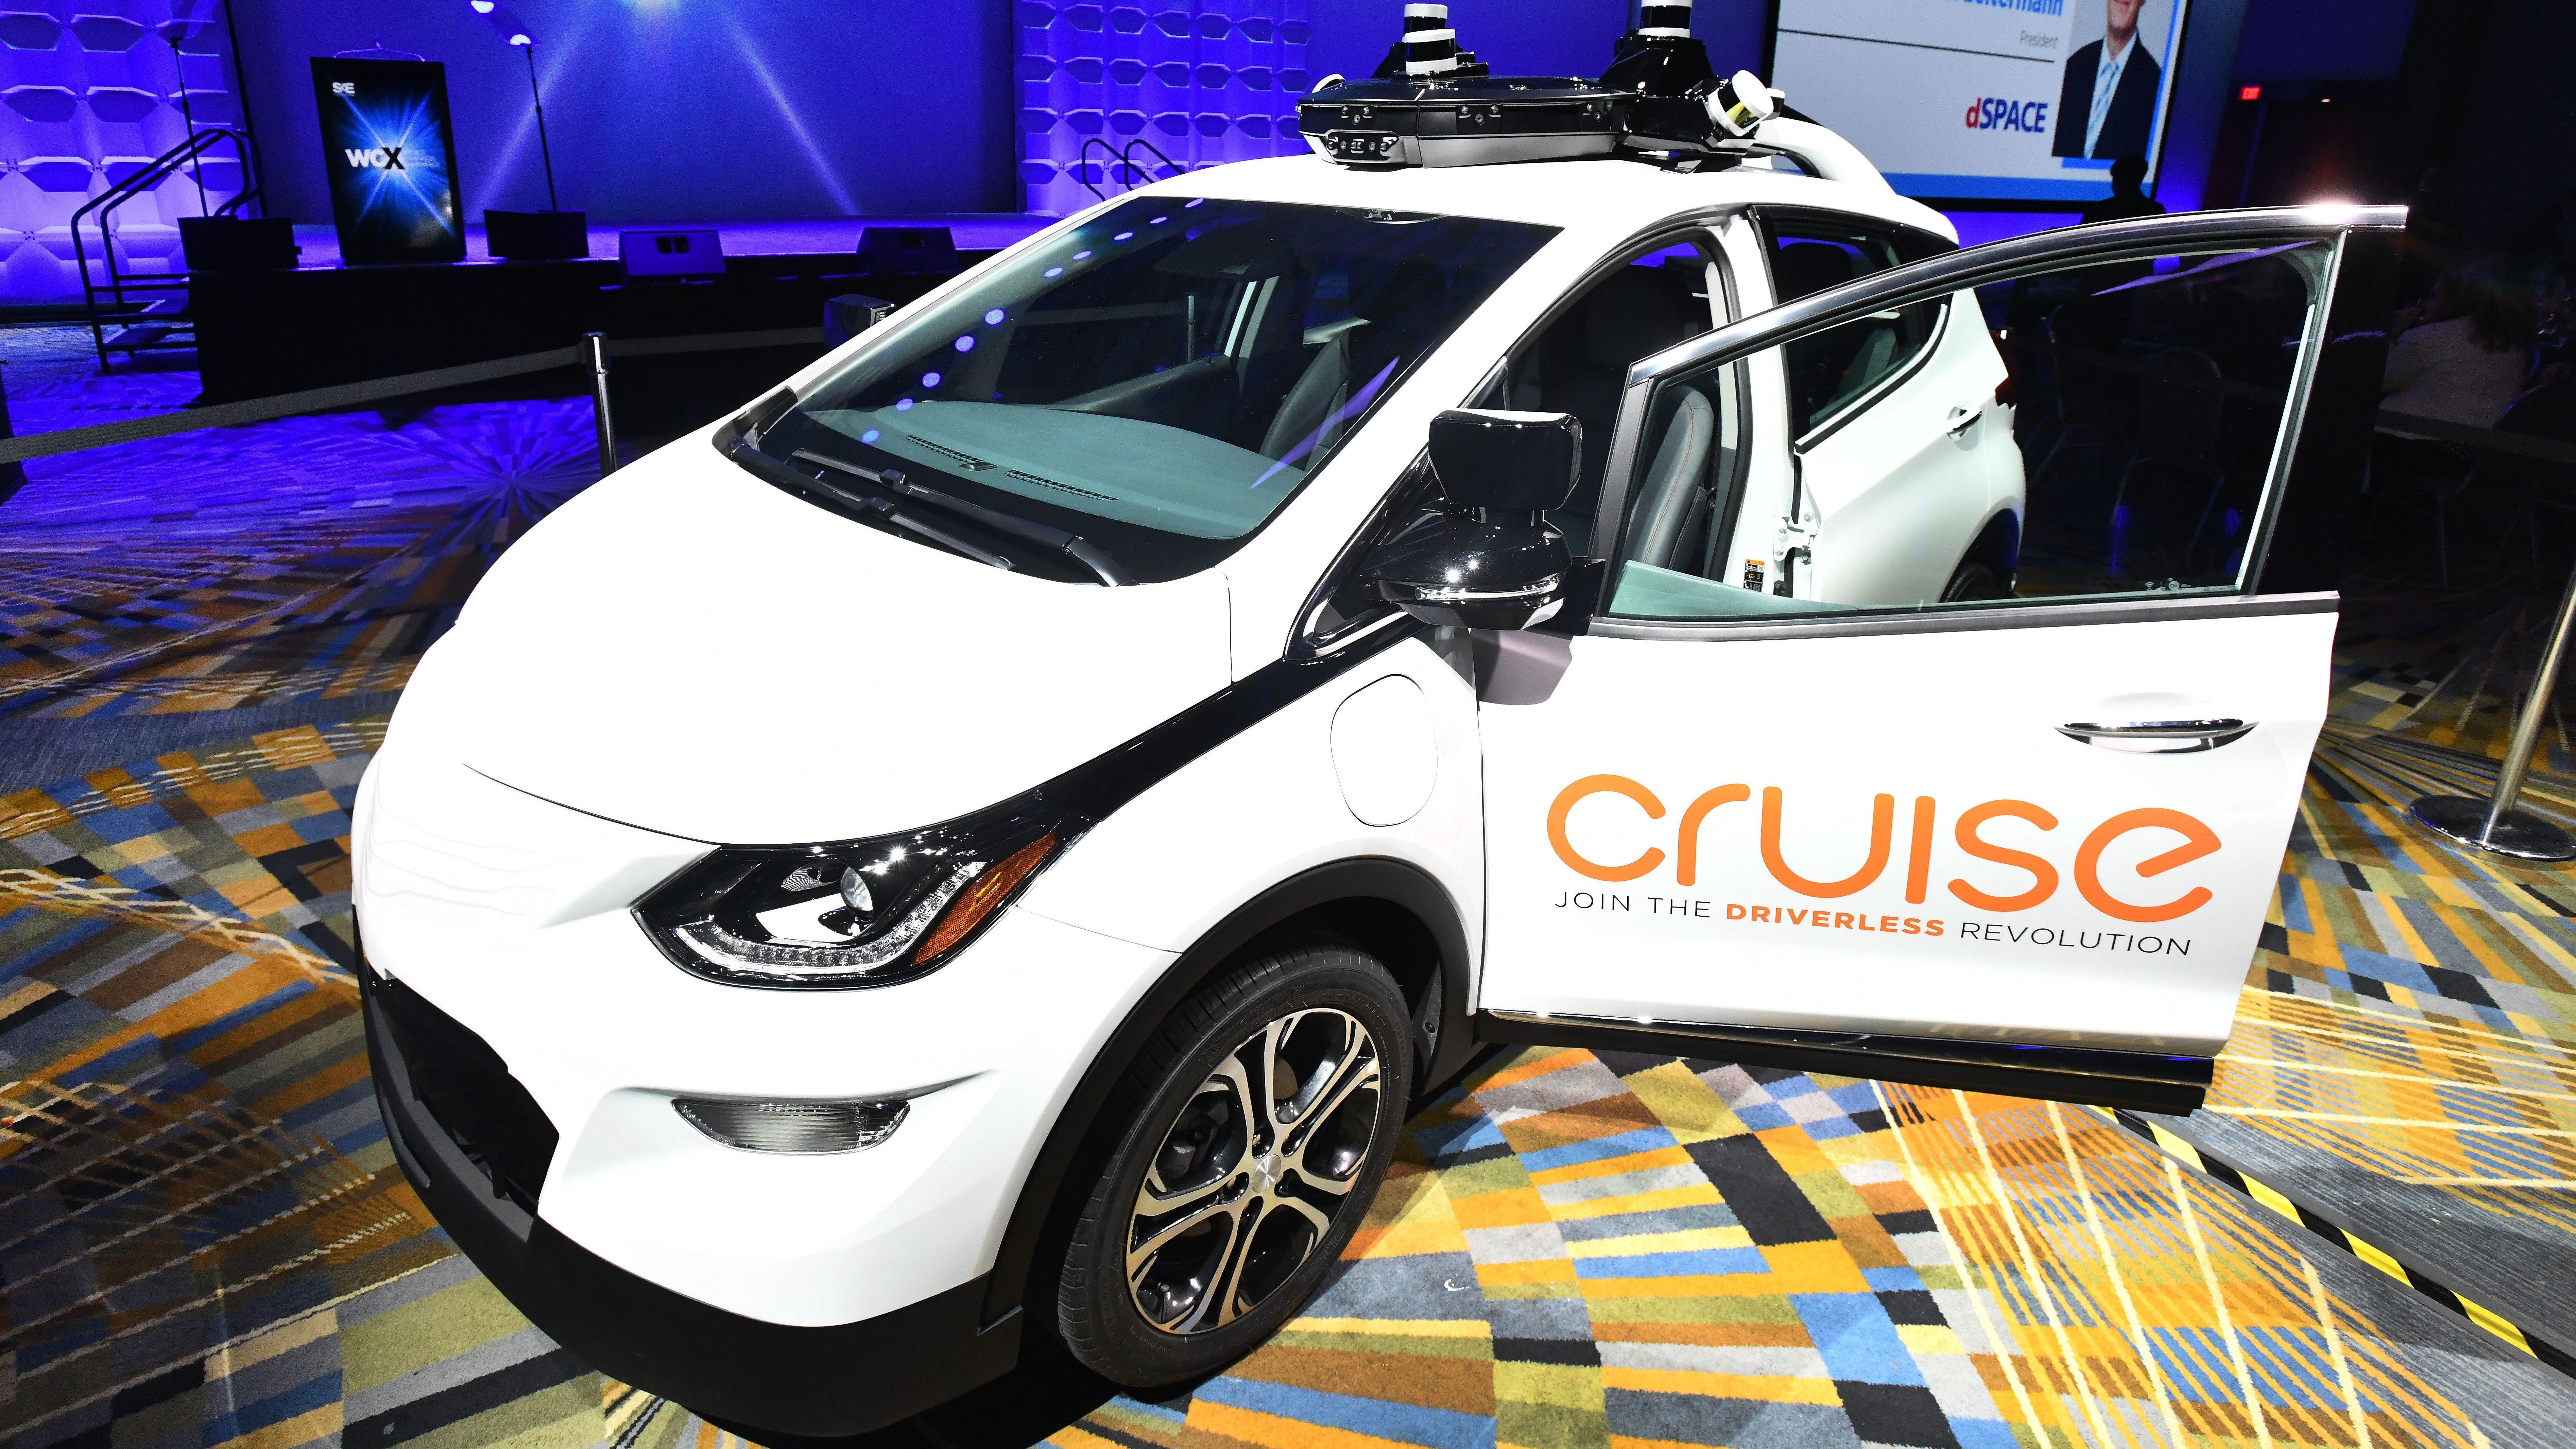 GM's driverless car petition to NHTSA enters public comment phase